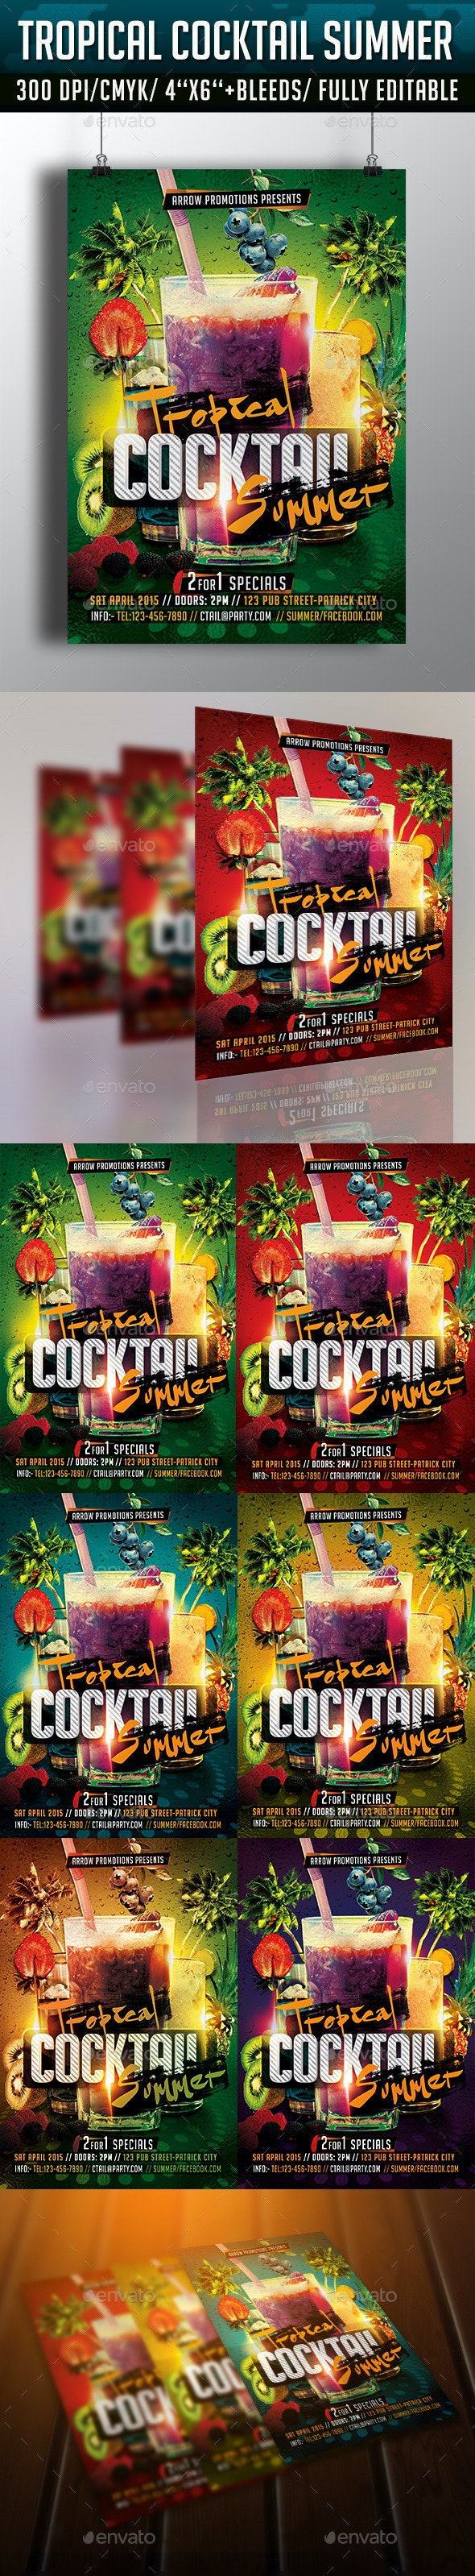 Tropical Cocktail Summer Flyer Template - Clubs & Parties Events